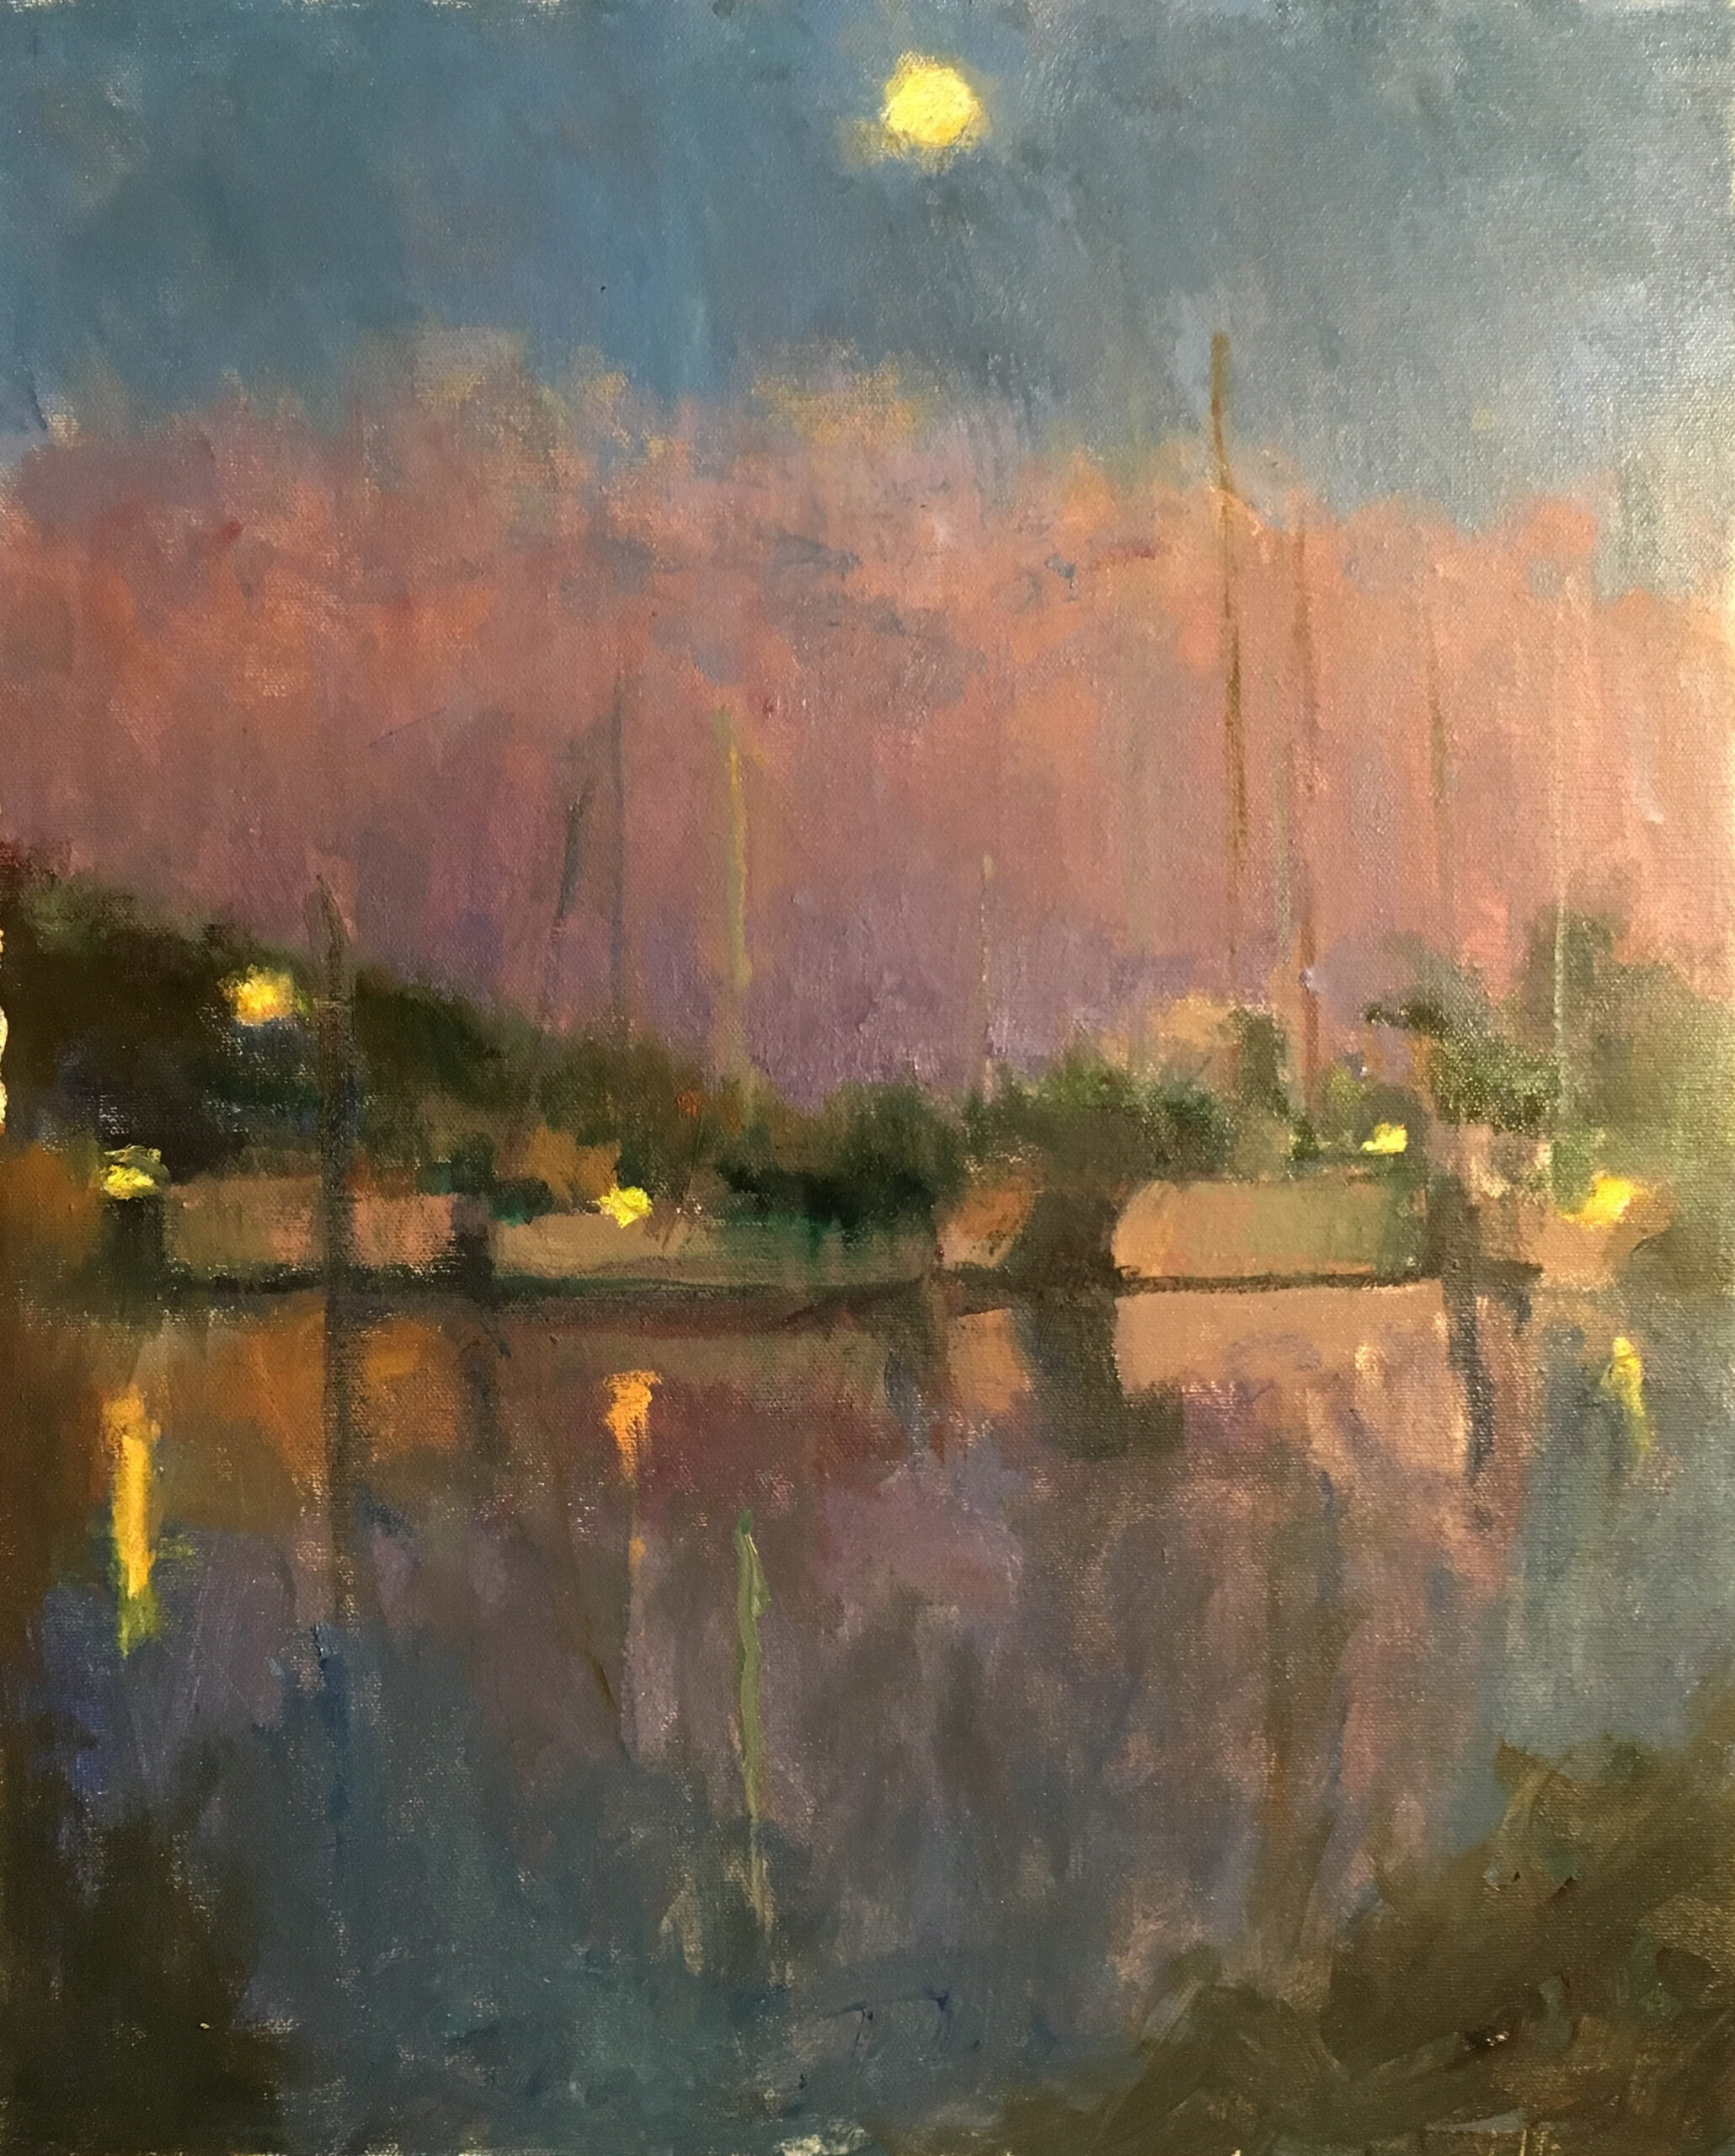 Moonlit Marina, Oil on Canvas, 20 x 16 Inches, by Susan Grisell, $550